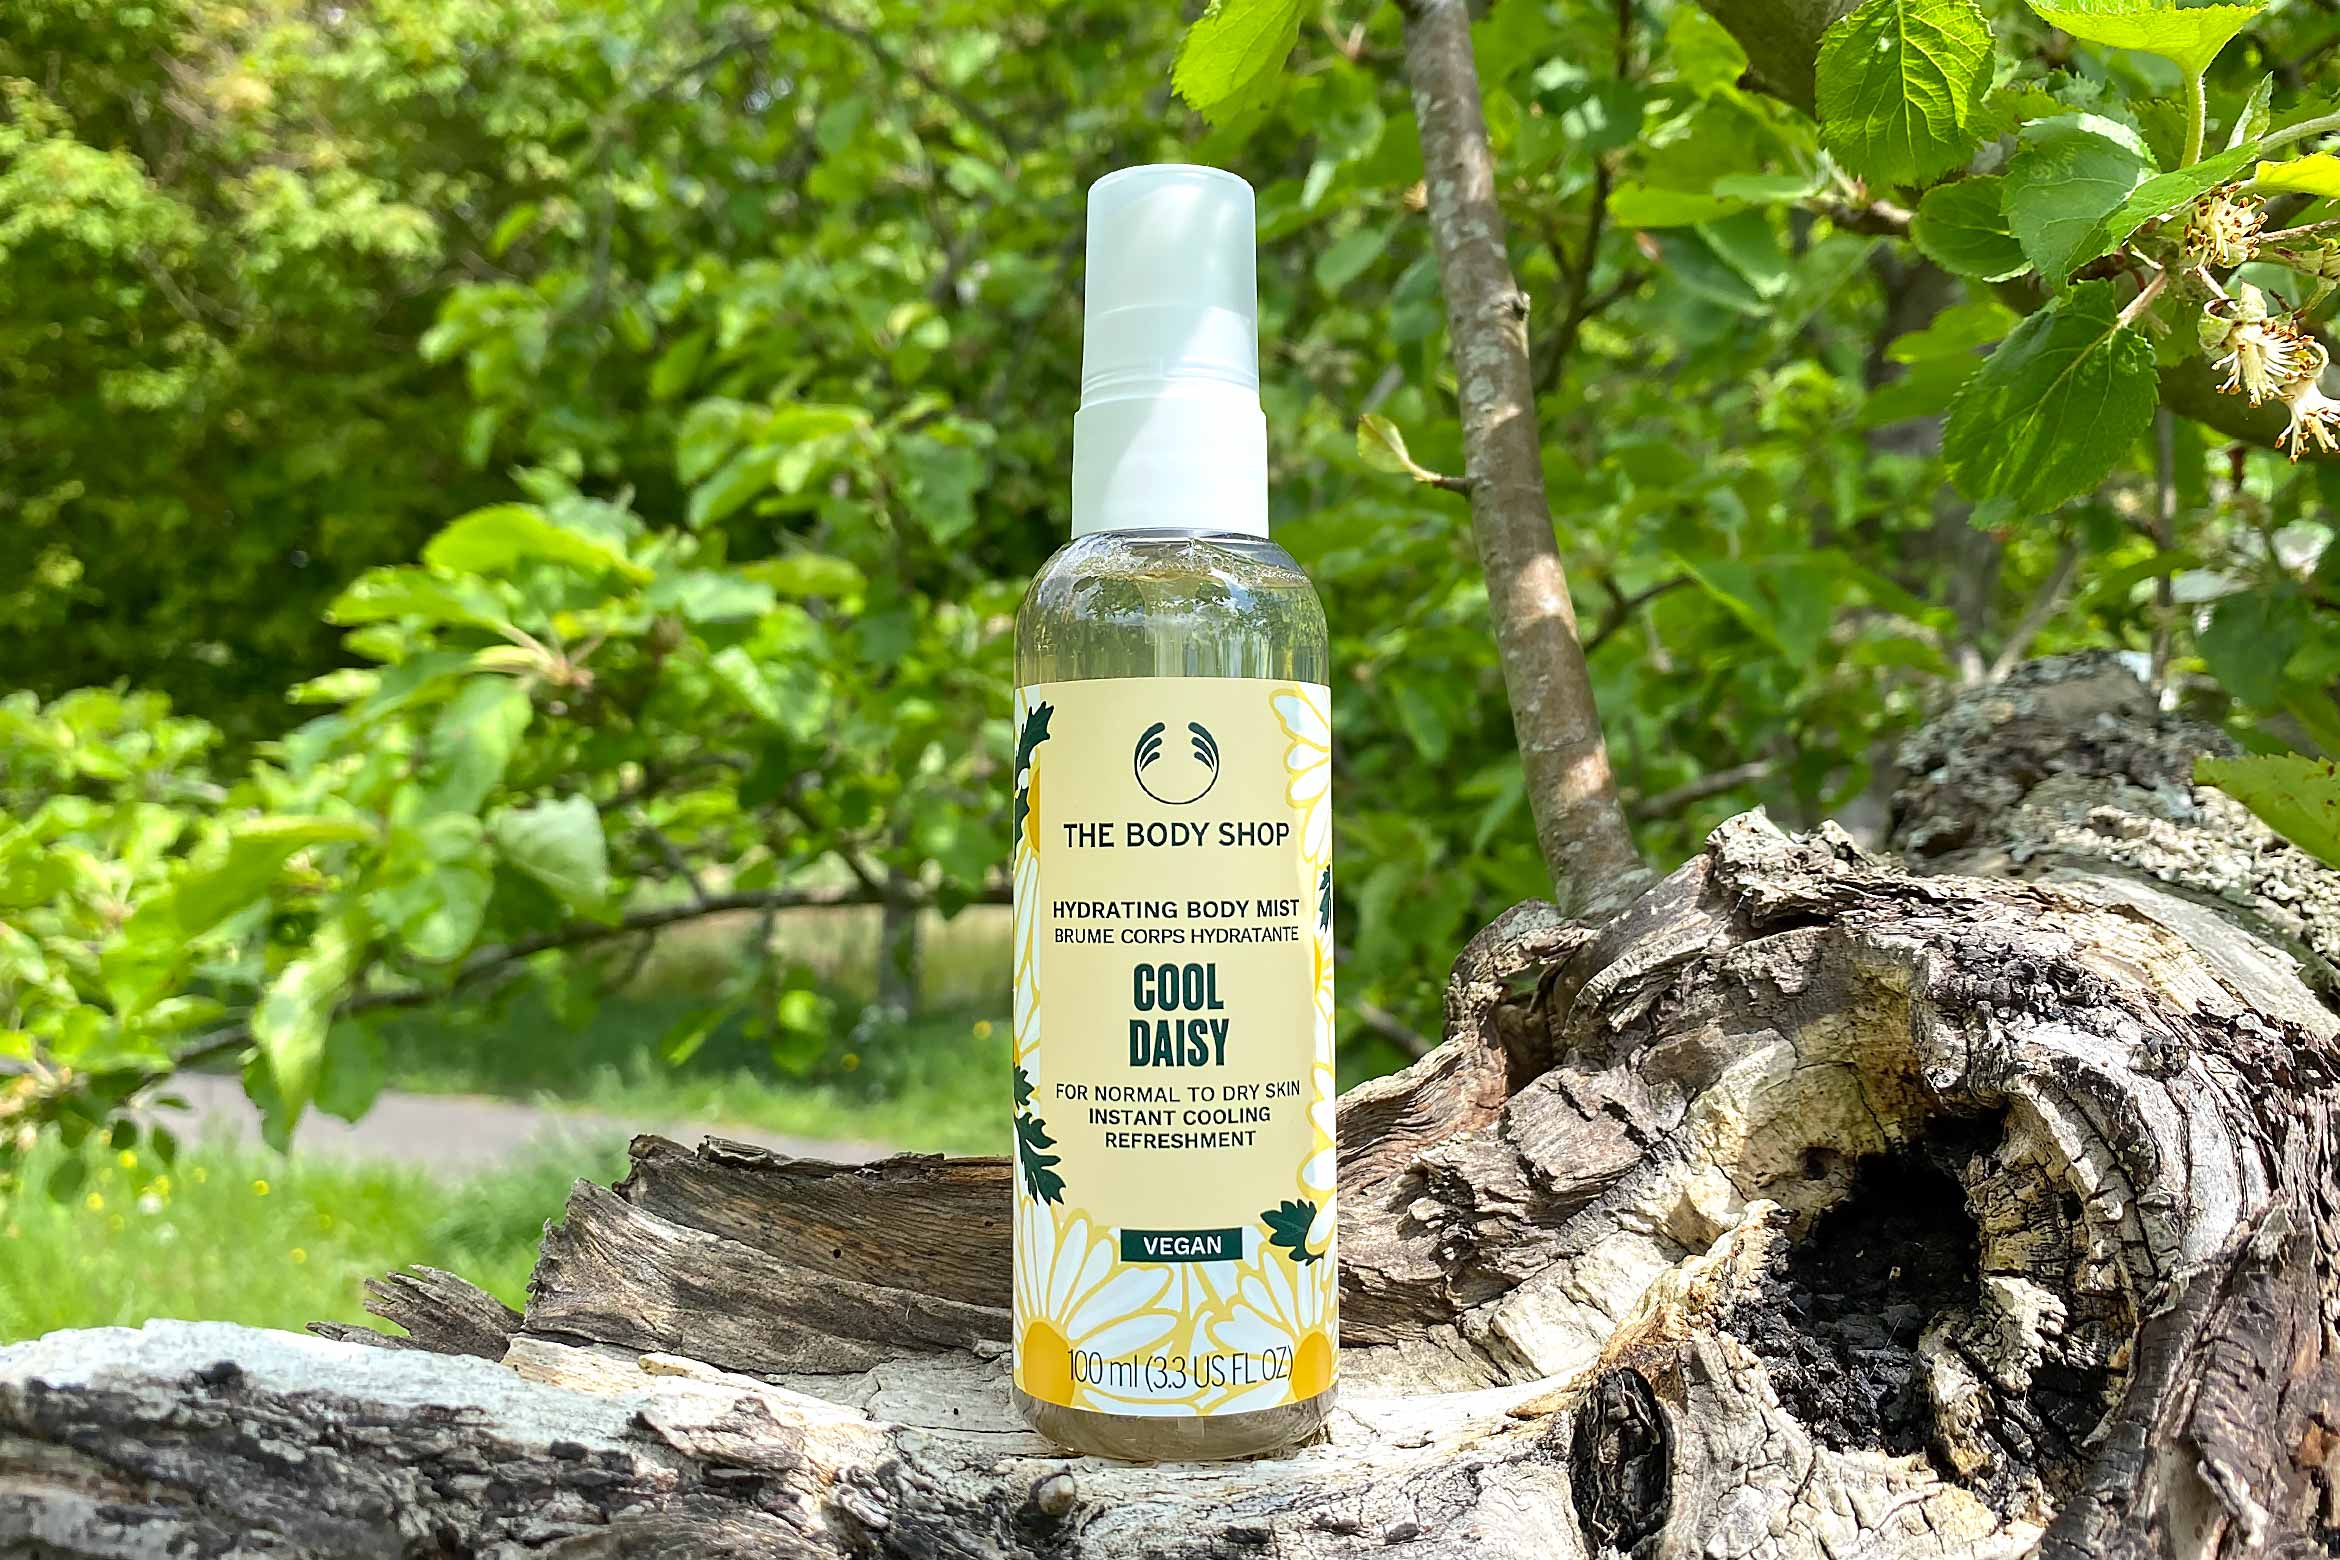 the body shop cool daisy body mist review